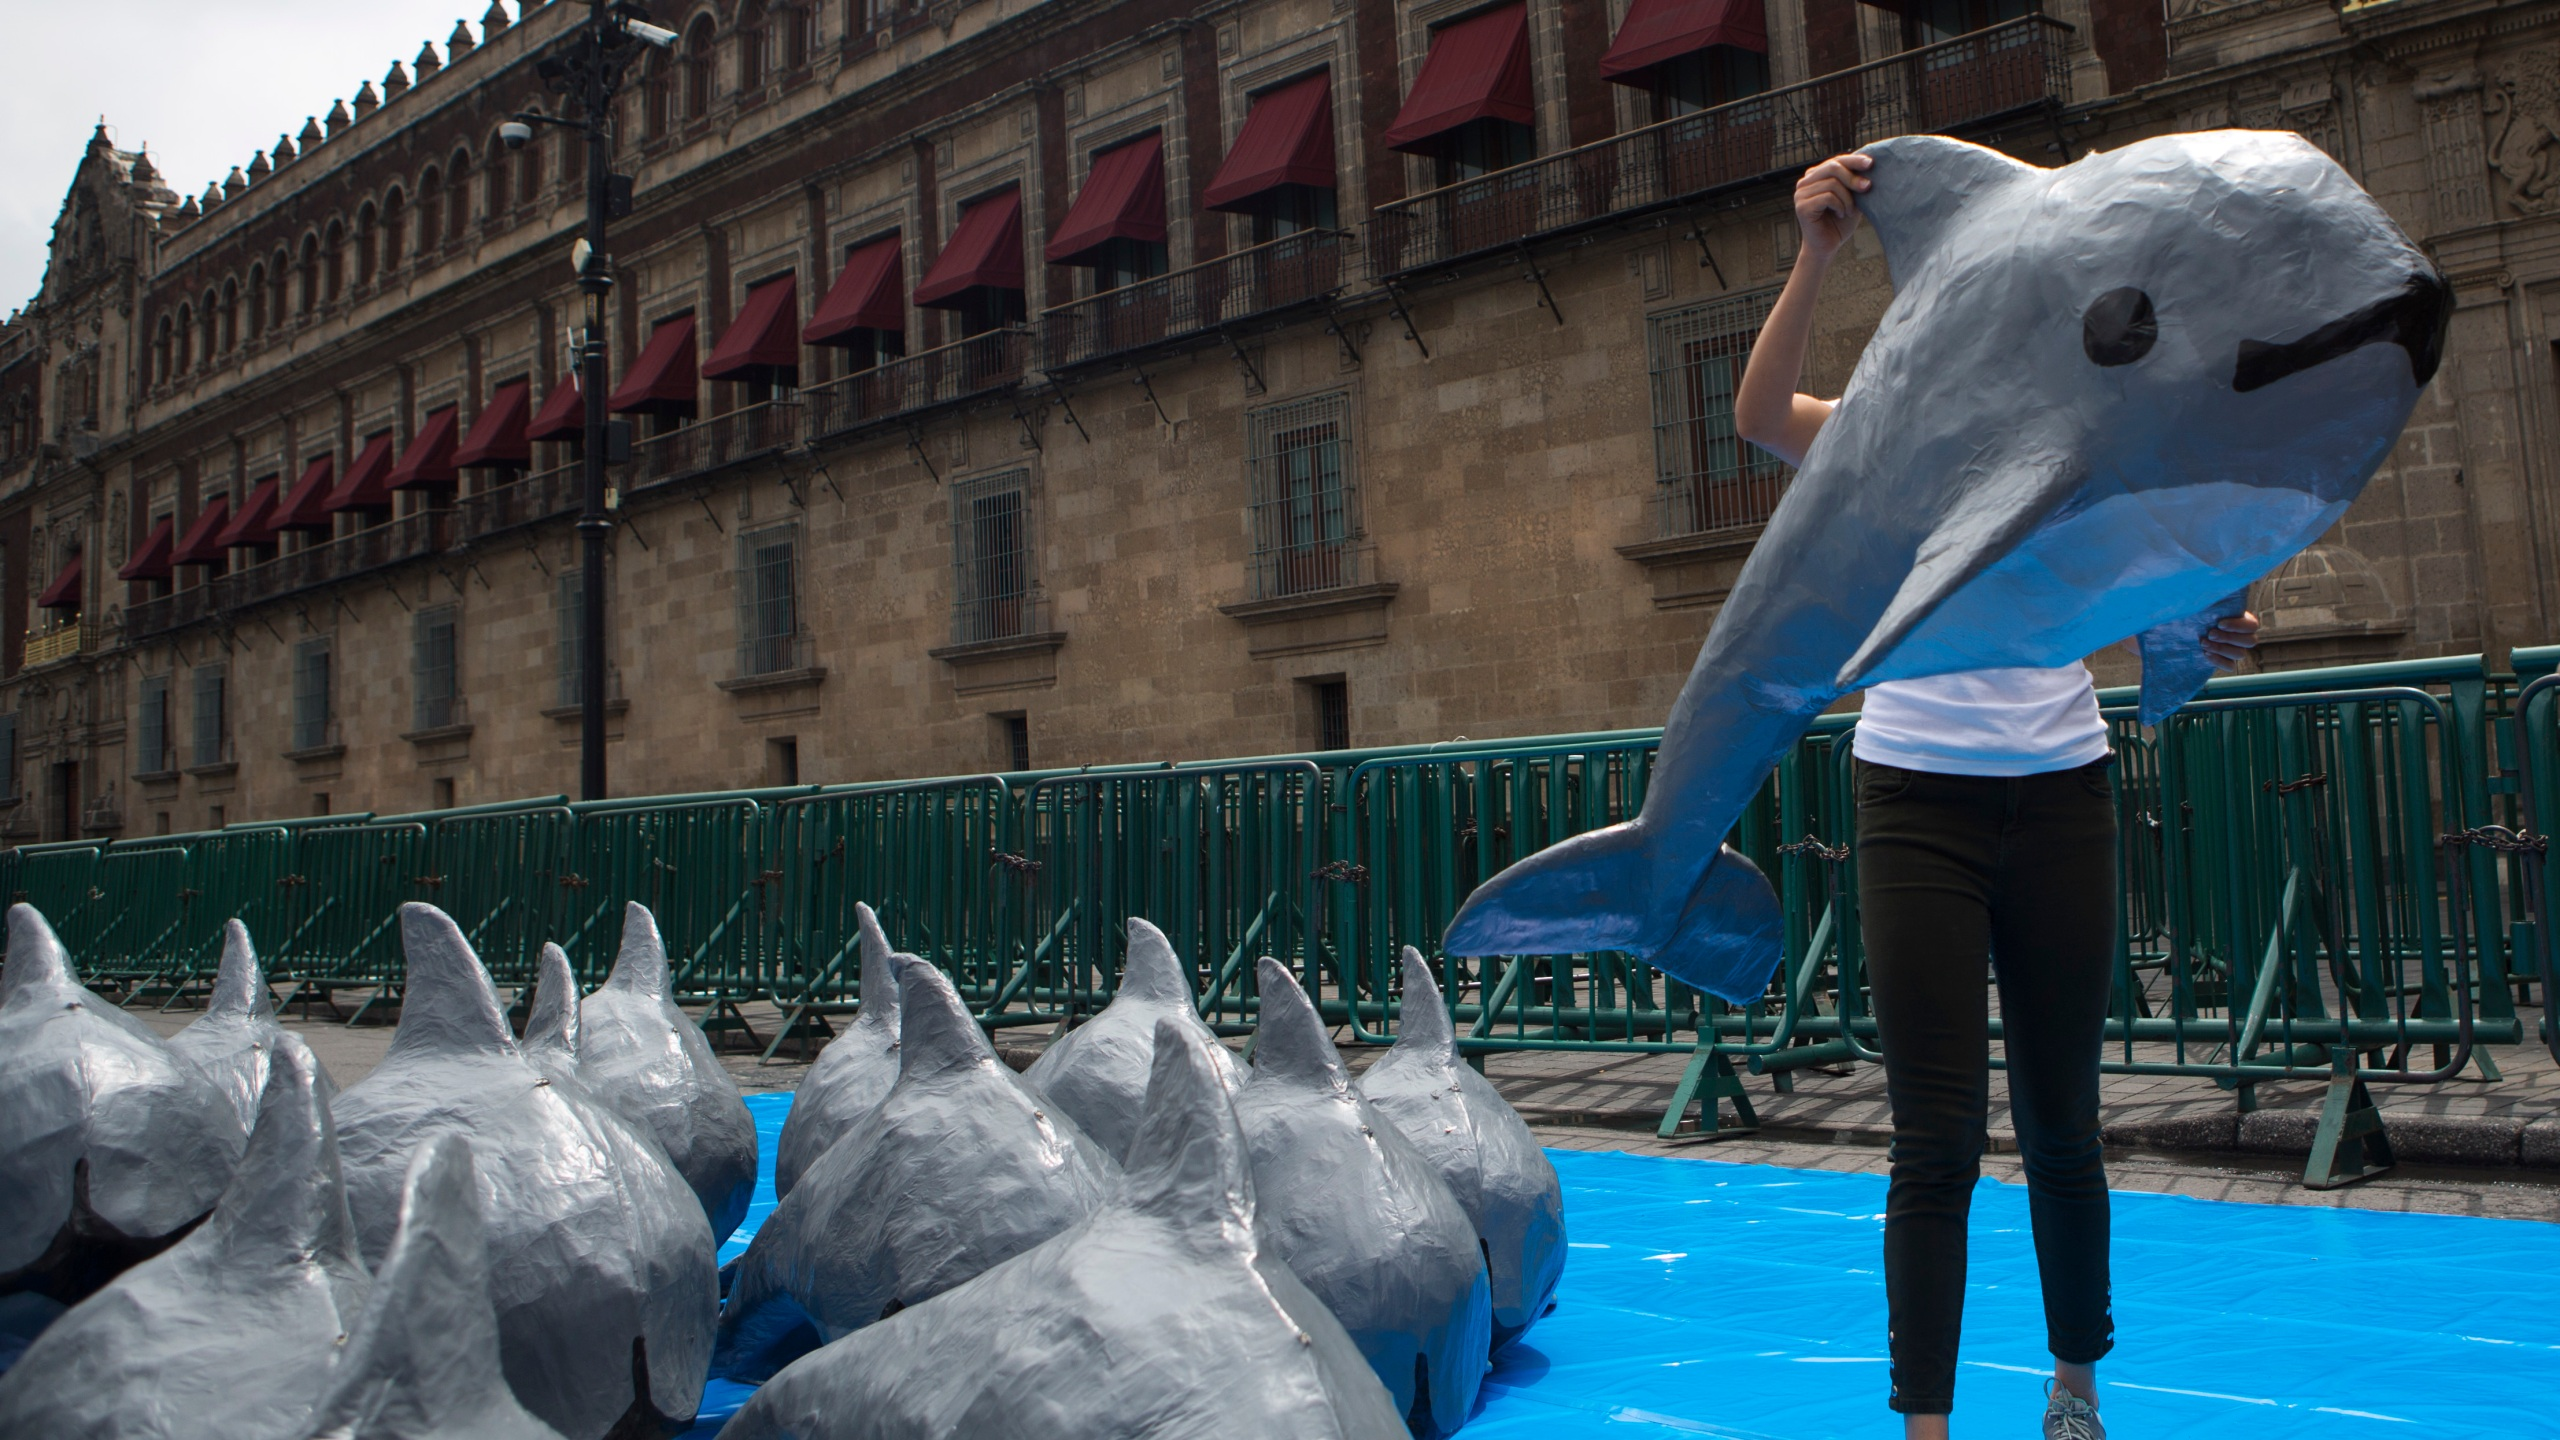 FILE - In this July 8, 2017 file photo, a young woman with the World Wildlife Fund carries a papier mache replica of the critically endangered porpoise known as the vaquita marina, during an event in front of the National Palace in Mexico City. The Mexican government announced Wednesday, July 14, 2021, that it is officially abandoned the policy of maintaining a fishing-free zone around the last 10 or so remaining vaquita marina. (AP Photo/Rebecca Blackwell, File)